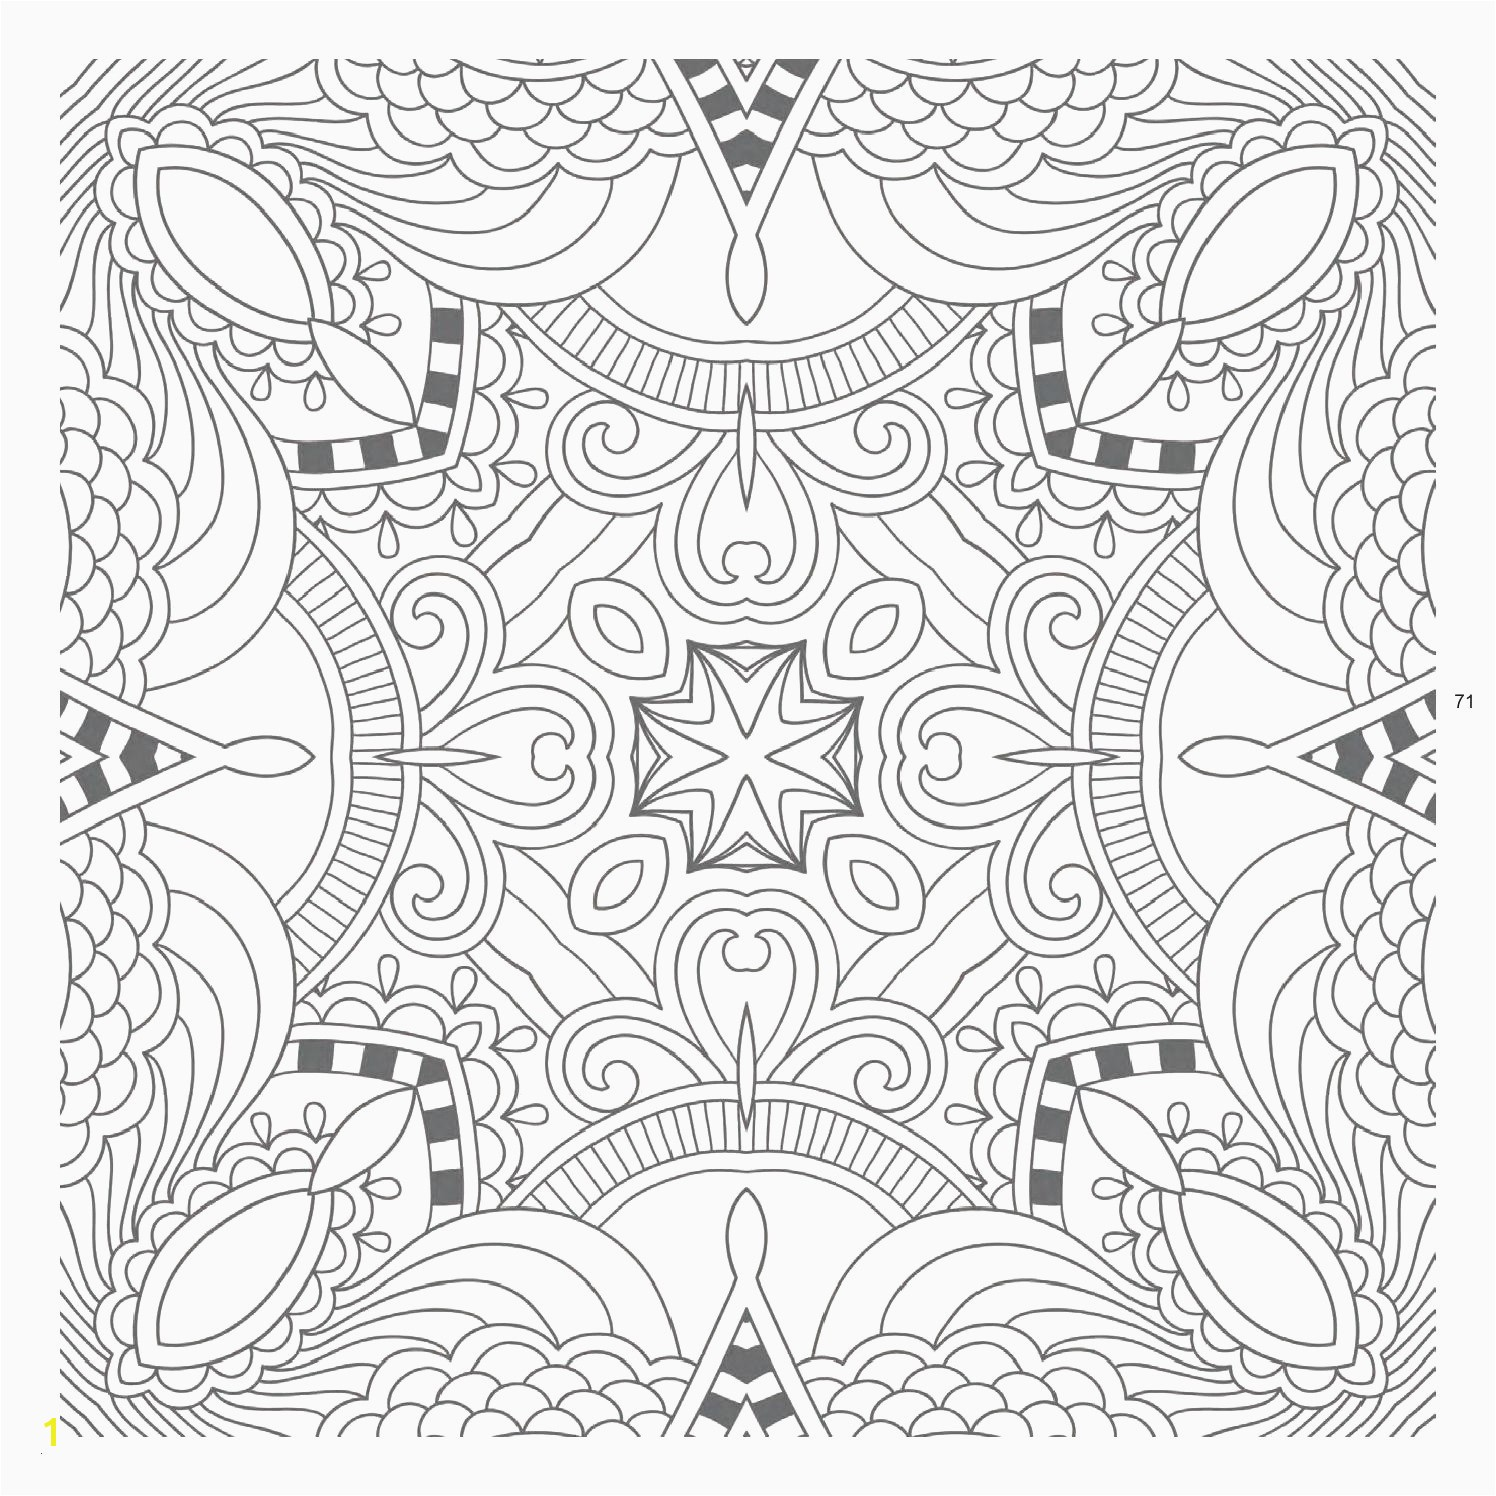 Printable Coloring Pages Line New Line Coloring 0d Archives Con Scio – Fun Time New Nice Hard Coloring Pages verikira from super hard abstract